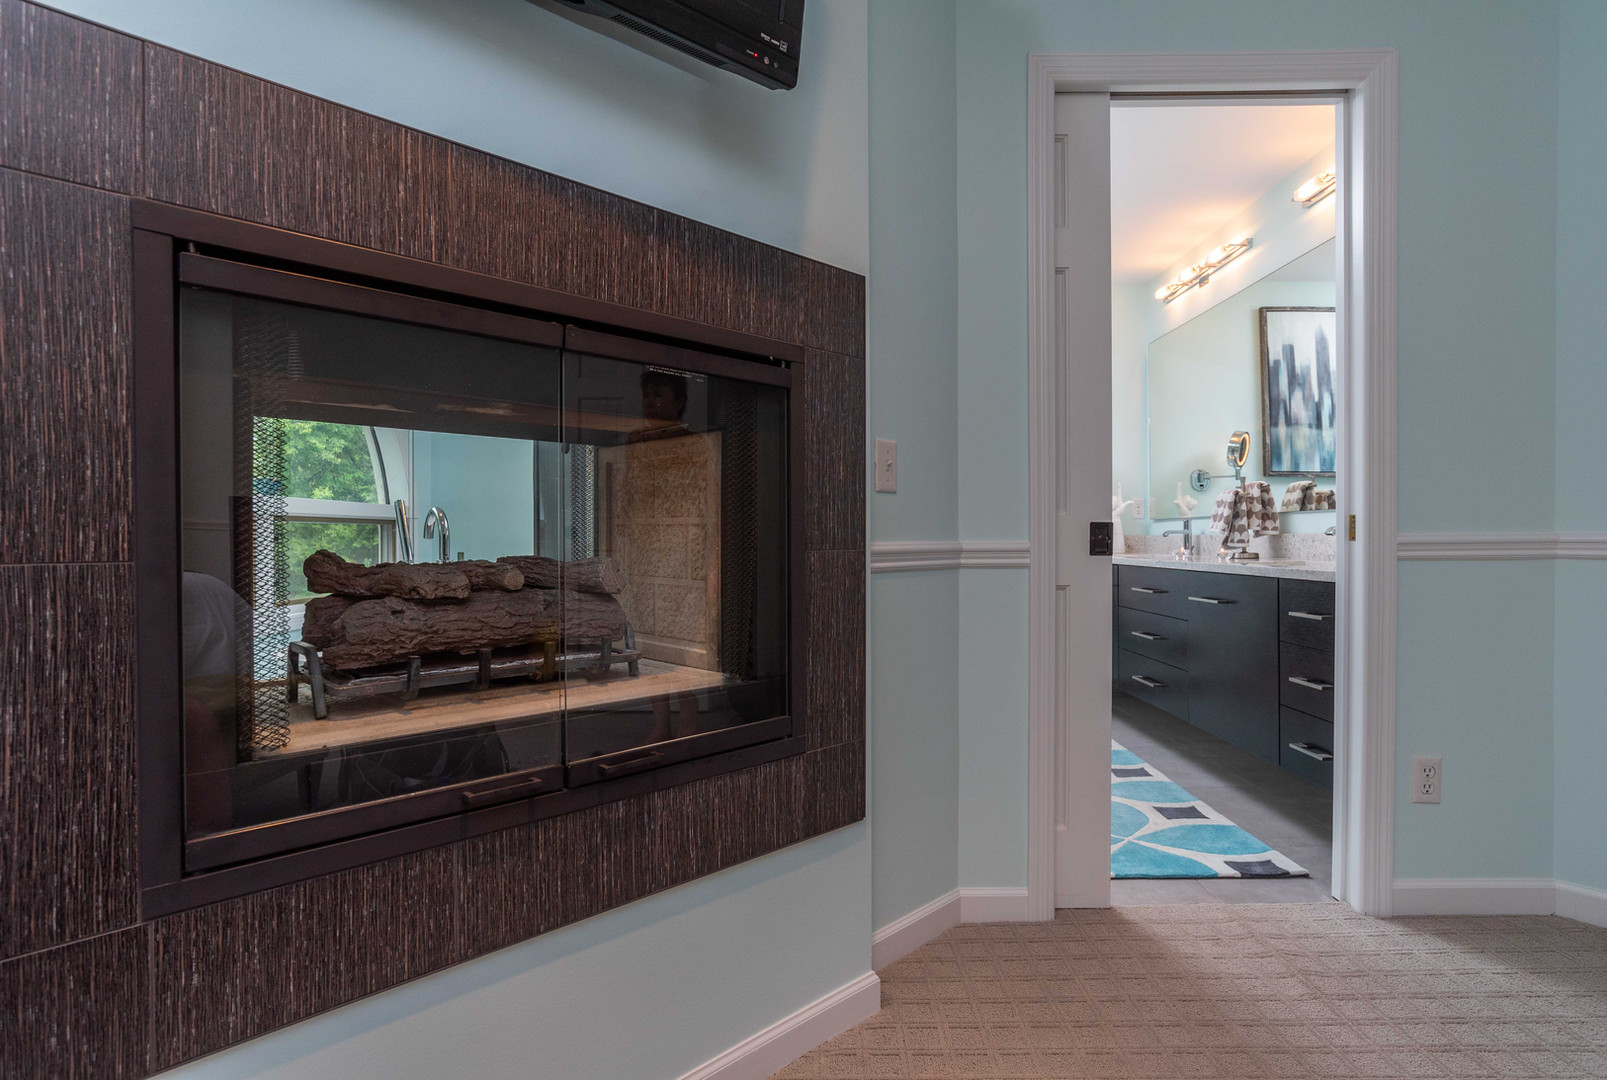 EDEN PRAIRIE TREETOP BATH:   The double-sided fireplace and doorway provide a glimpse into this colorful and comfortable bathroom